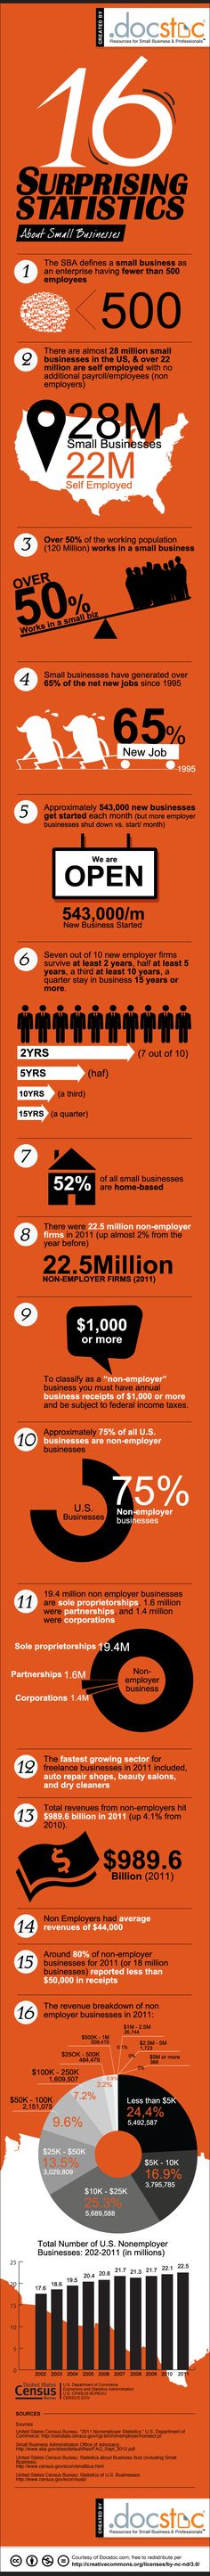 The State of US Small Businesses: 16 small business stats everyone should know. http://www.businessinsider.com/infographic-the-state-of-us-small-businesses-2013-9